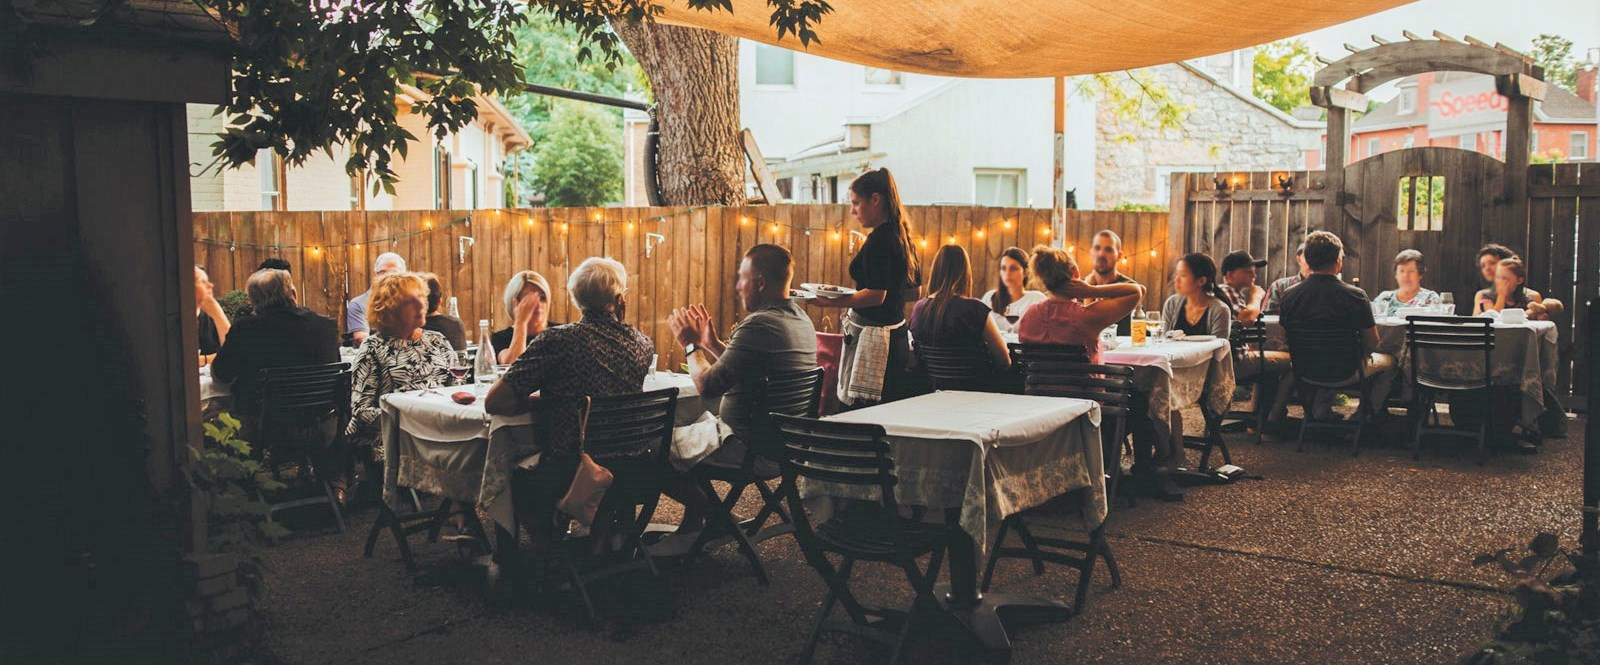 outside restaurant patio with people eating